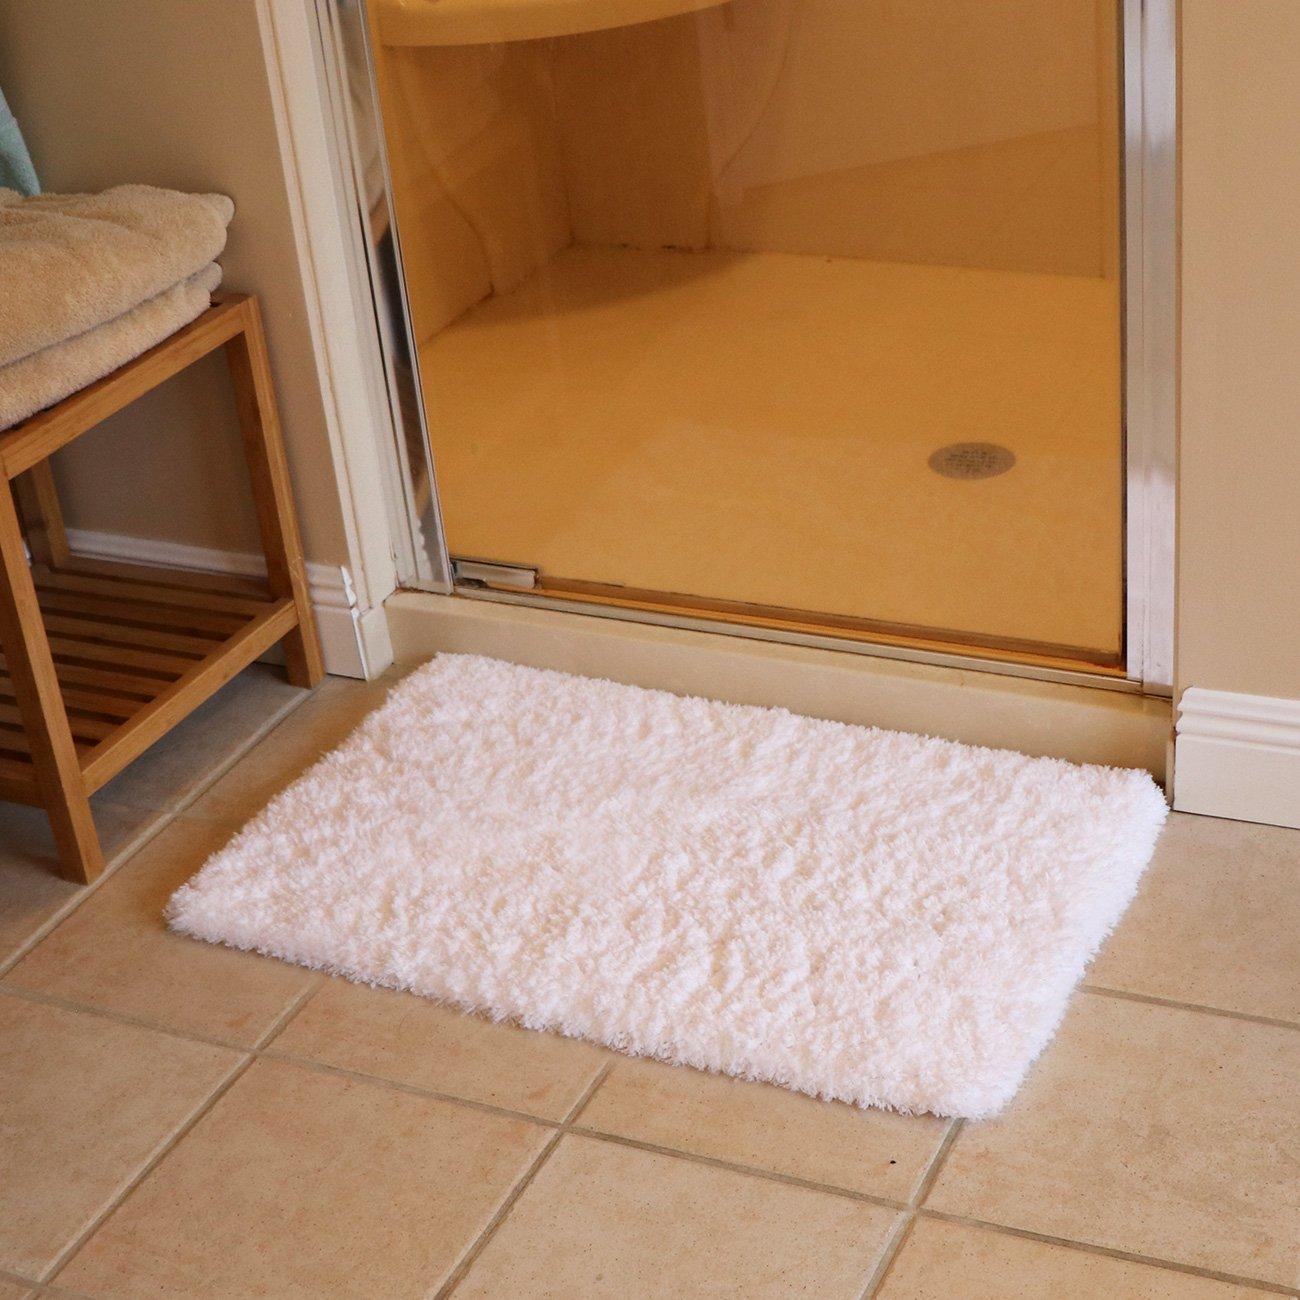 K MAT 20x32 Inch White Bath Mat Soft Shaggy Bathroom Rugs Non Slip Rubber